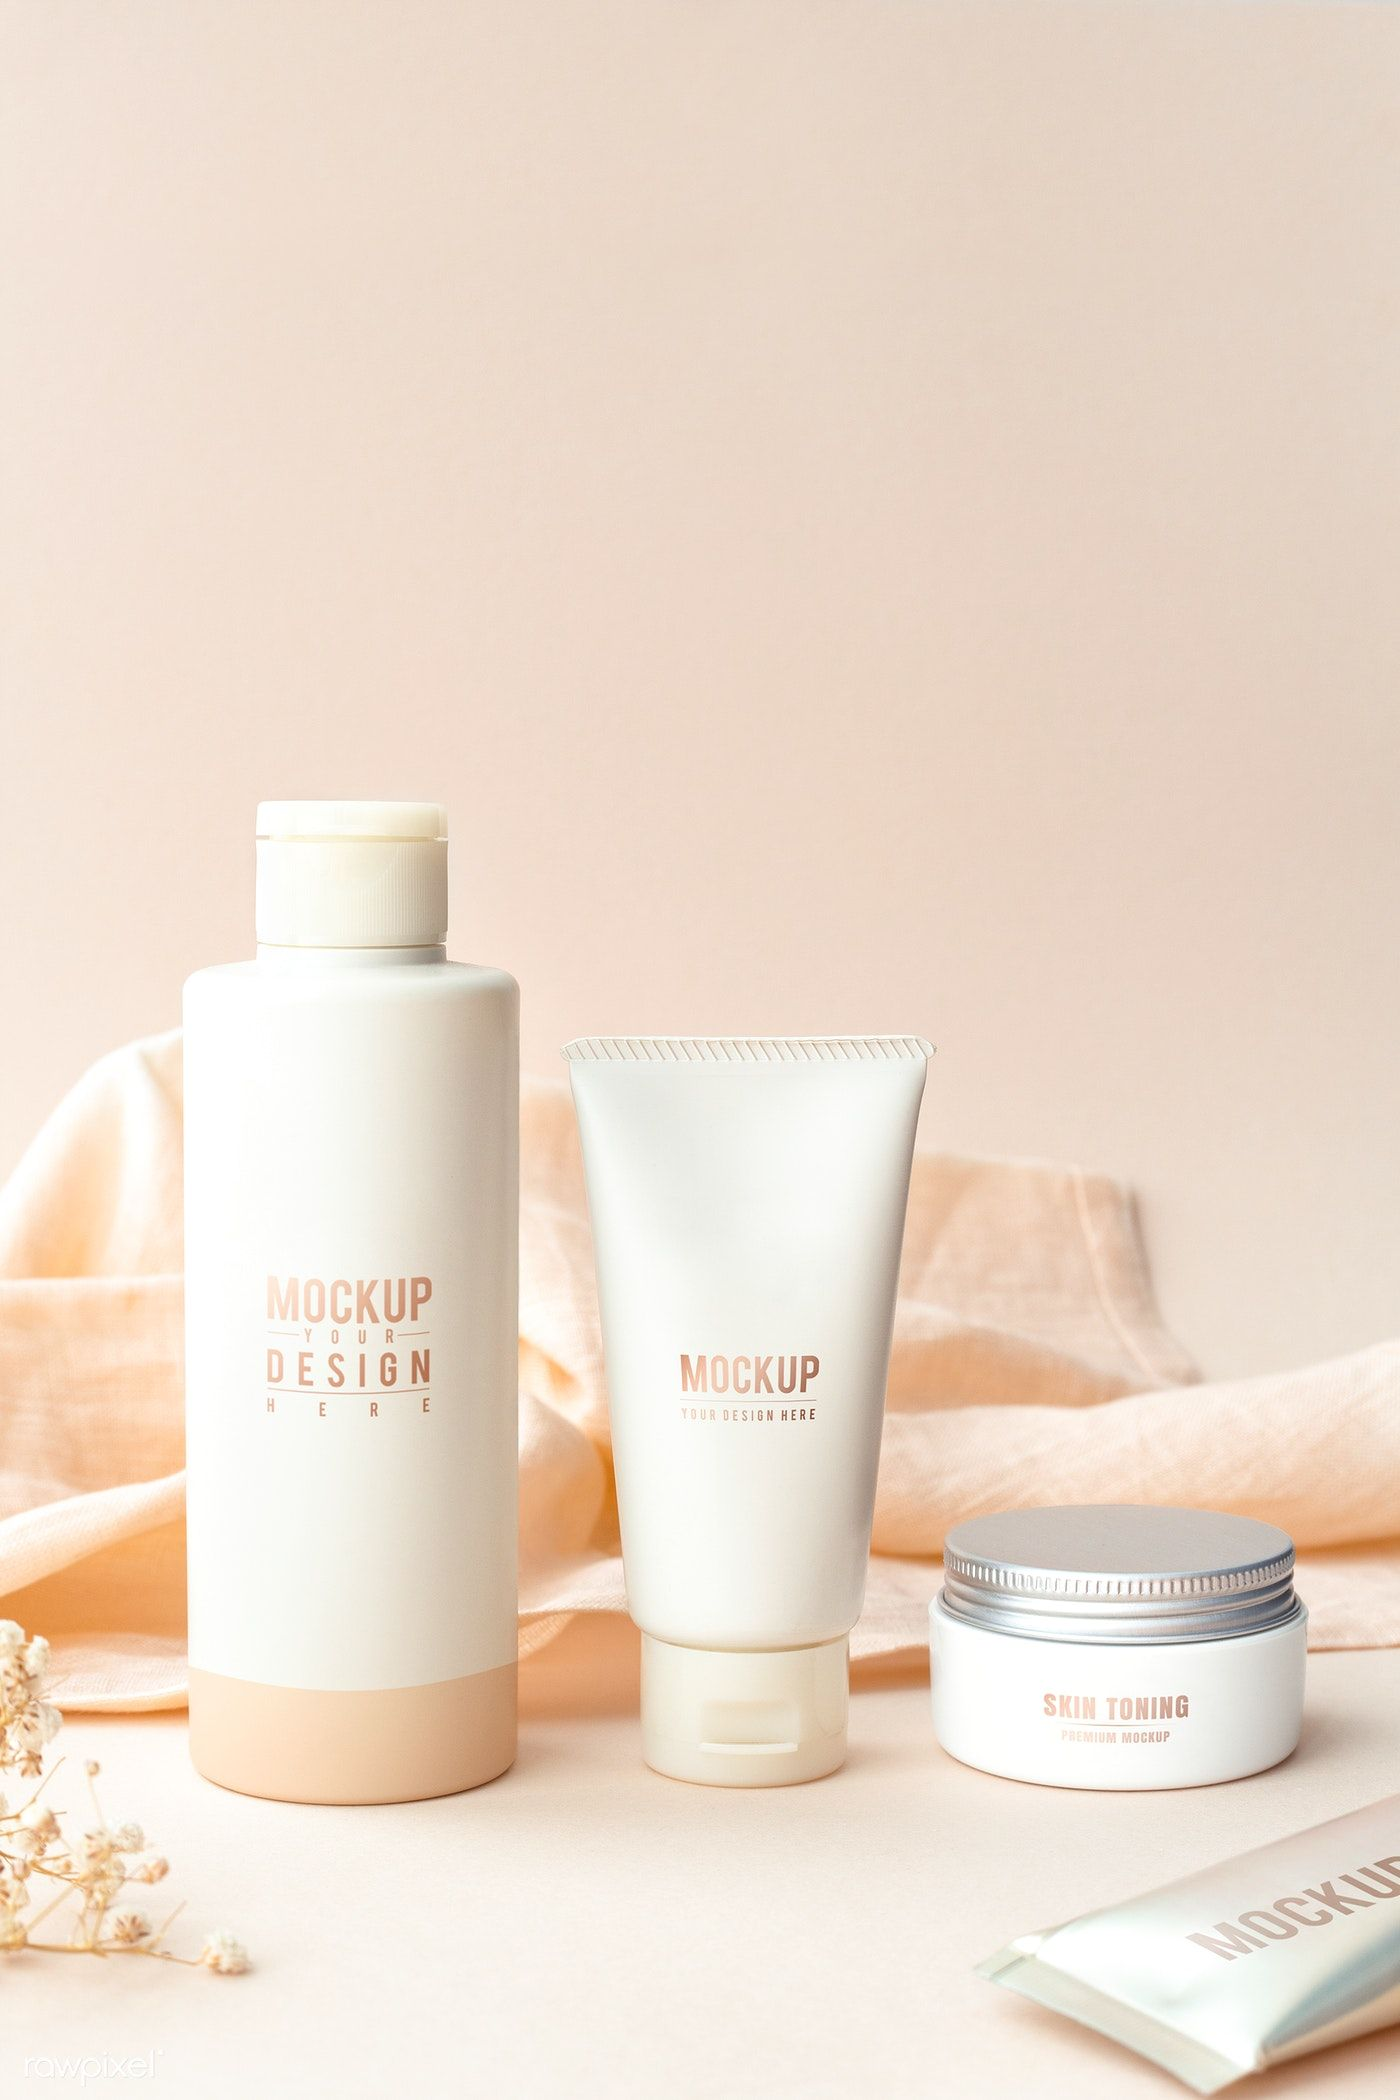 Download Premium Psd Of Beauty Products Mockup Design Set 1209908 Beauty Products Mockup Beauty Products Photography Cosmetic Design